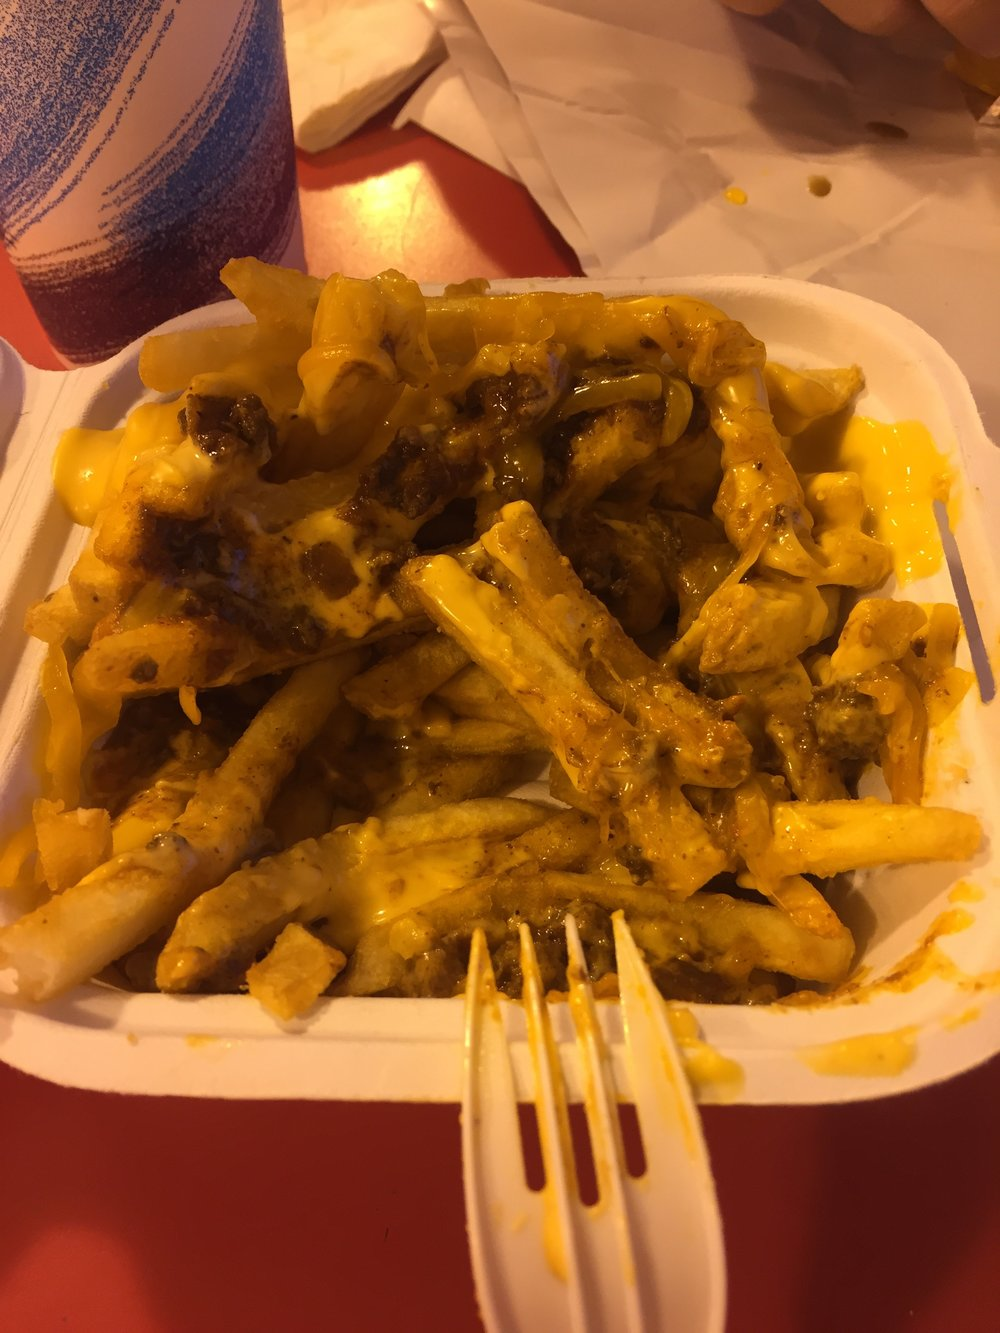 Chili Cheese Fries at  Tony Lukes . Their cheesesteaks are amazing too!